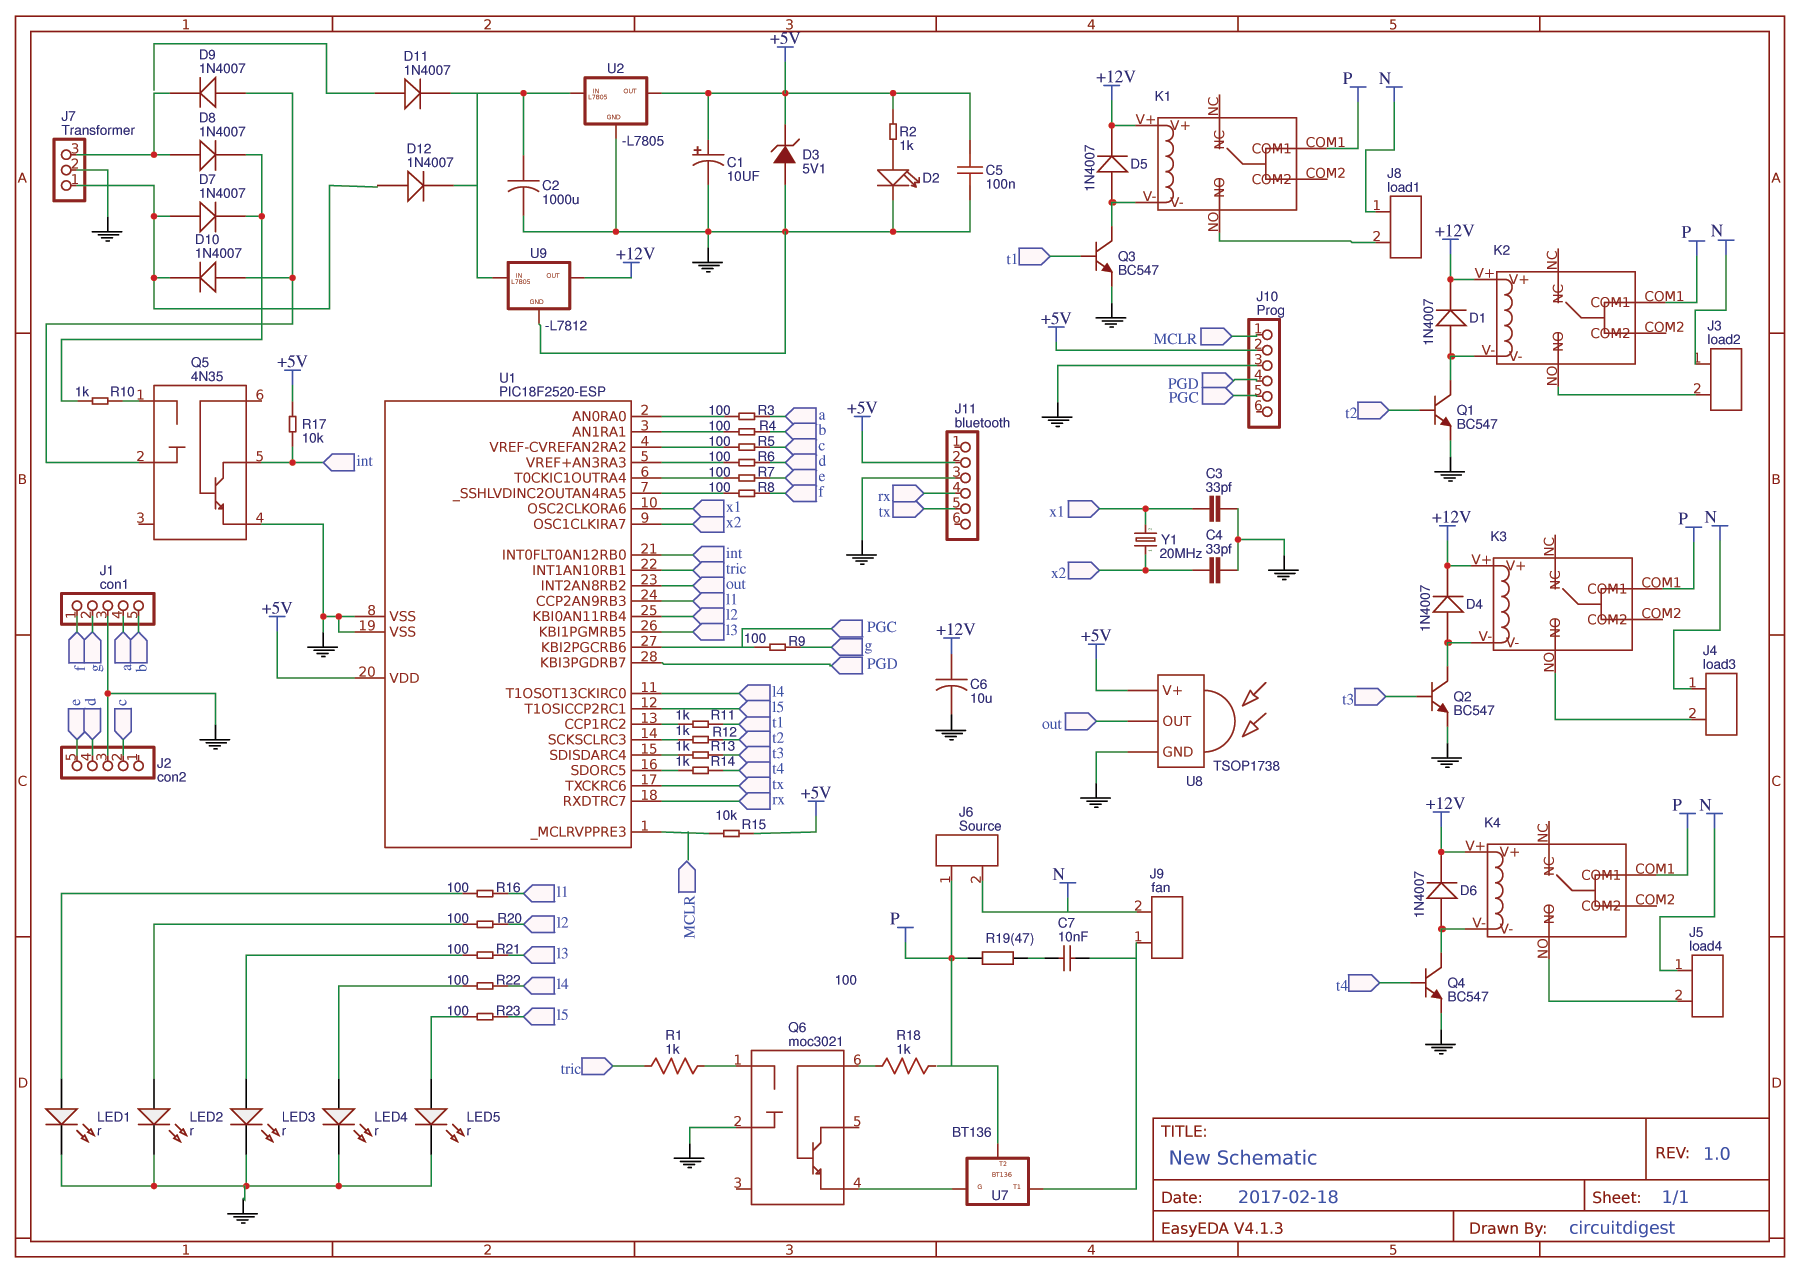 Ir Remote Controlled Home Automation Project Using Pic Introduction To 16f877 Circuit Diagram For Microcontroller Based